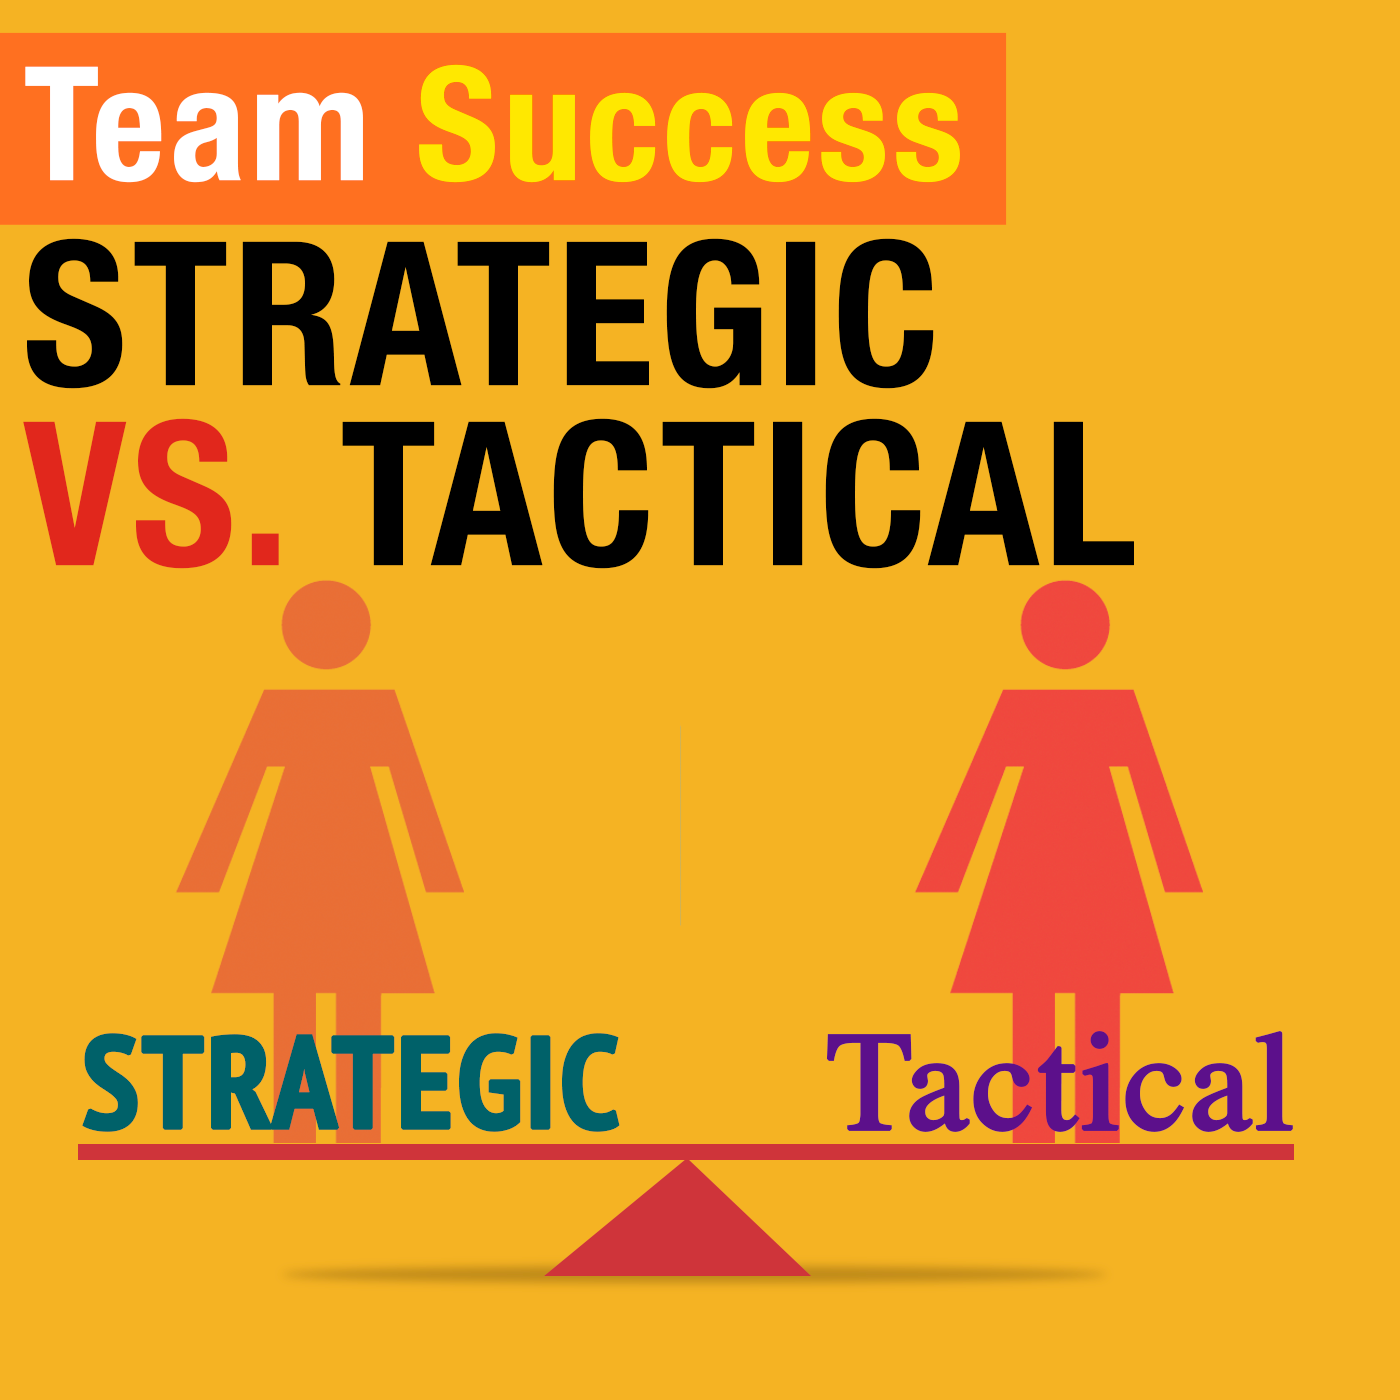 Strategic vs. Tactical